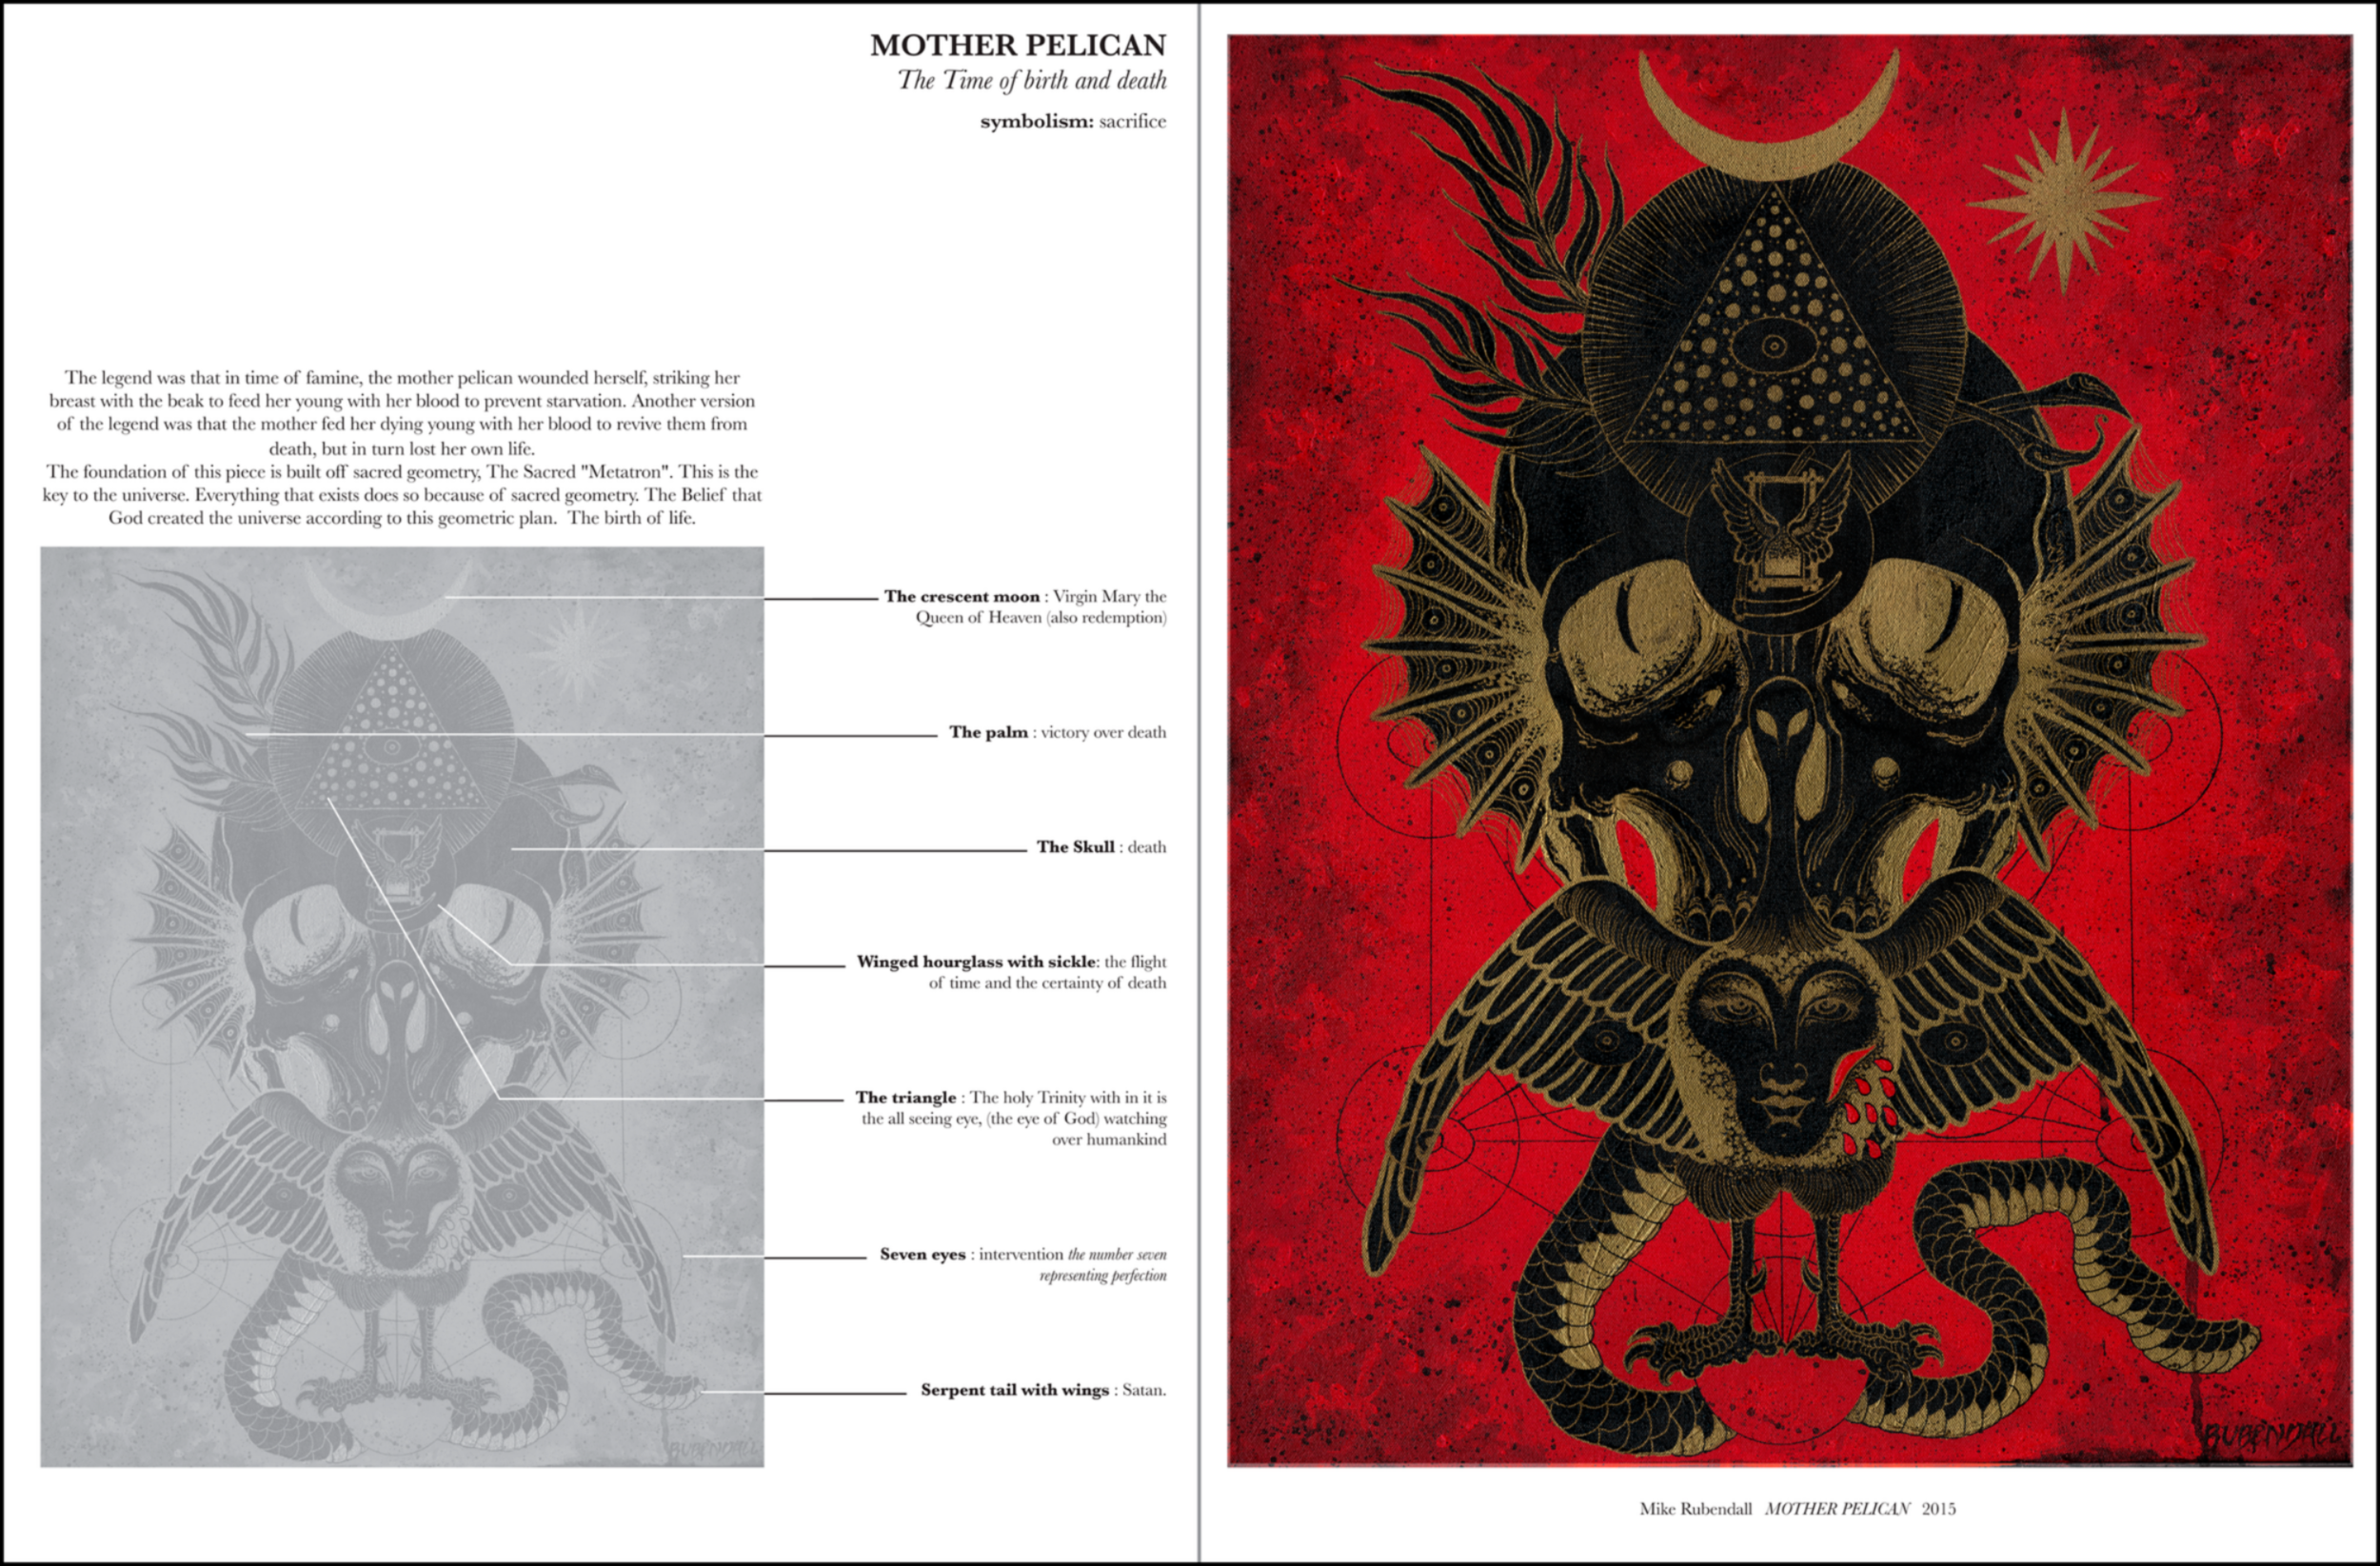 """The  COR MYSTERIUM series will be a multi-volume encyclopedia of tattoo symbology.Each volume will feature a diverse selection of artwork from the world's best tattooers and will define the symbolic meaning found in each component of every image.  Volume One:  """"The Classics"""", will focus on the traditional and iconic tattoo images that serve as the foundation of our craft.  With more volumes to come, we hope to decode some of tattooing's most timeless images and inspire tattooers and collectors alike to compose tattoos that are not only visually appealing, but speak to the soul in a language deeper than words."""